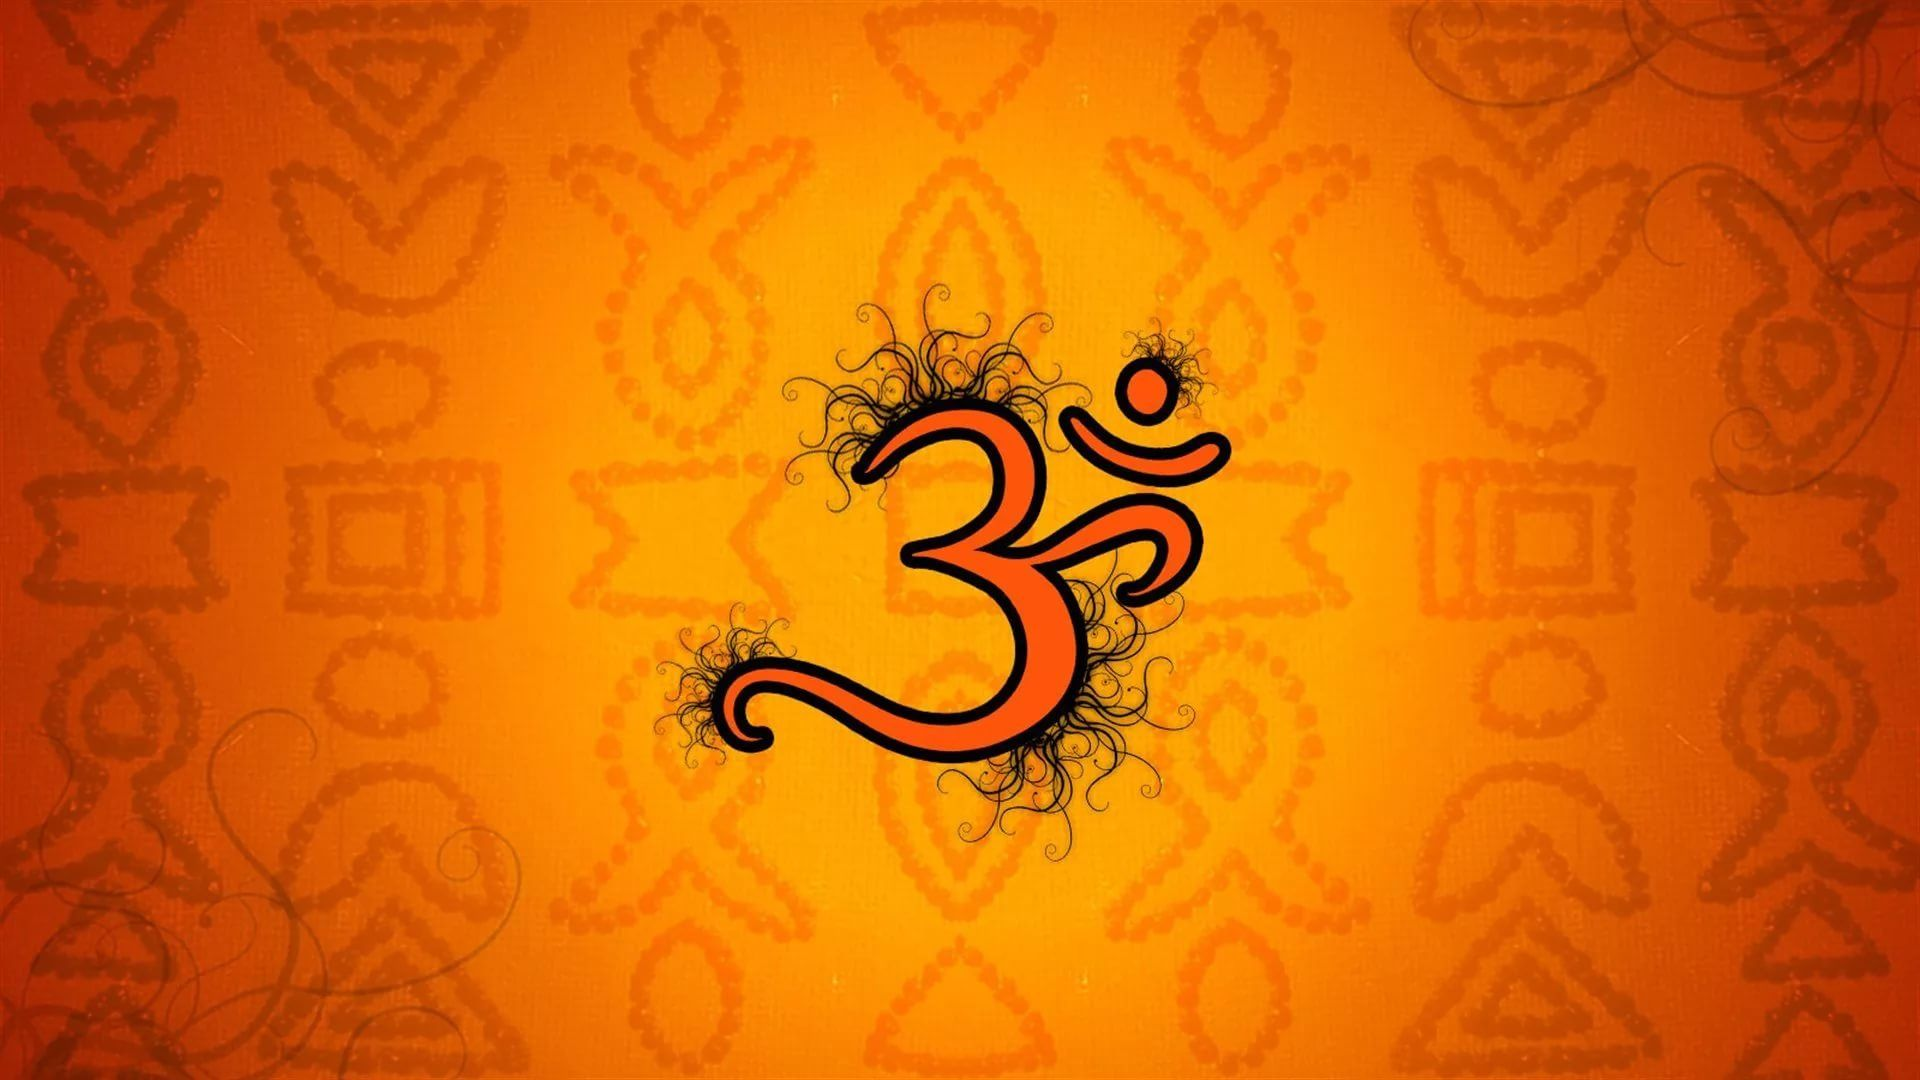 Om free hd wallpaper